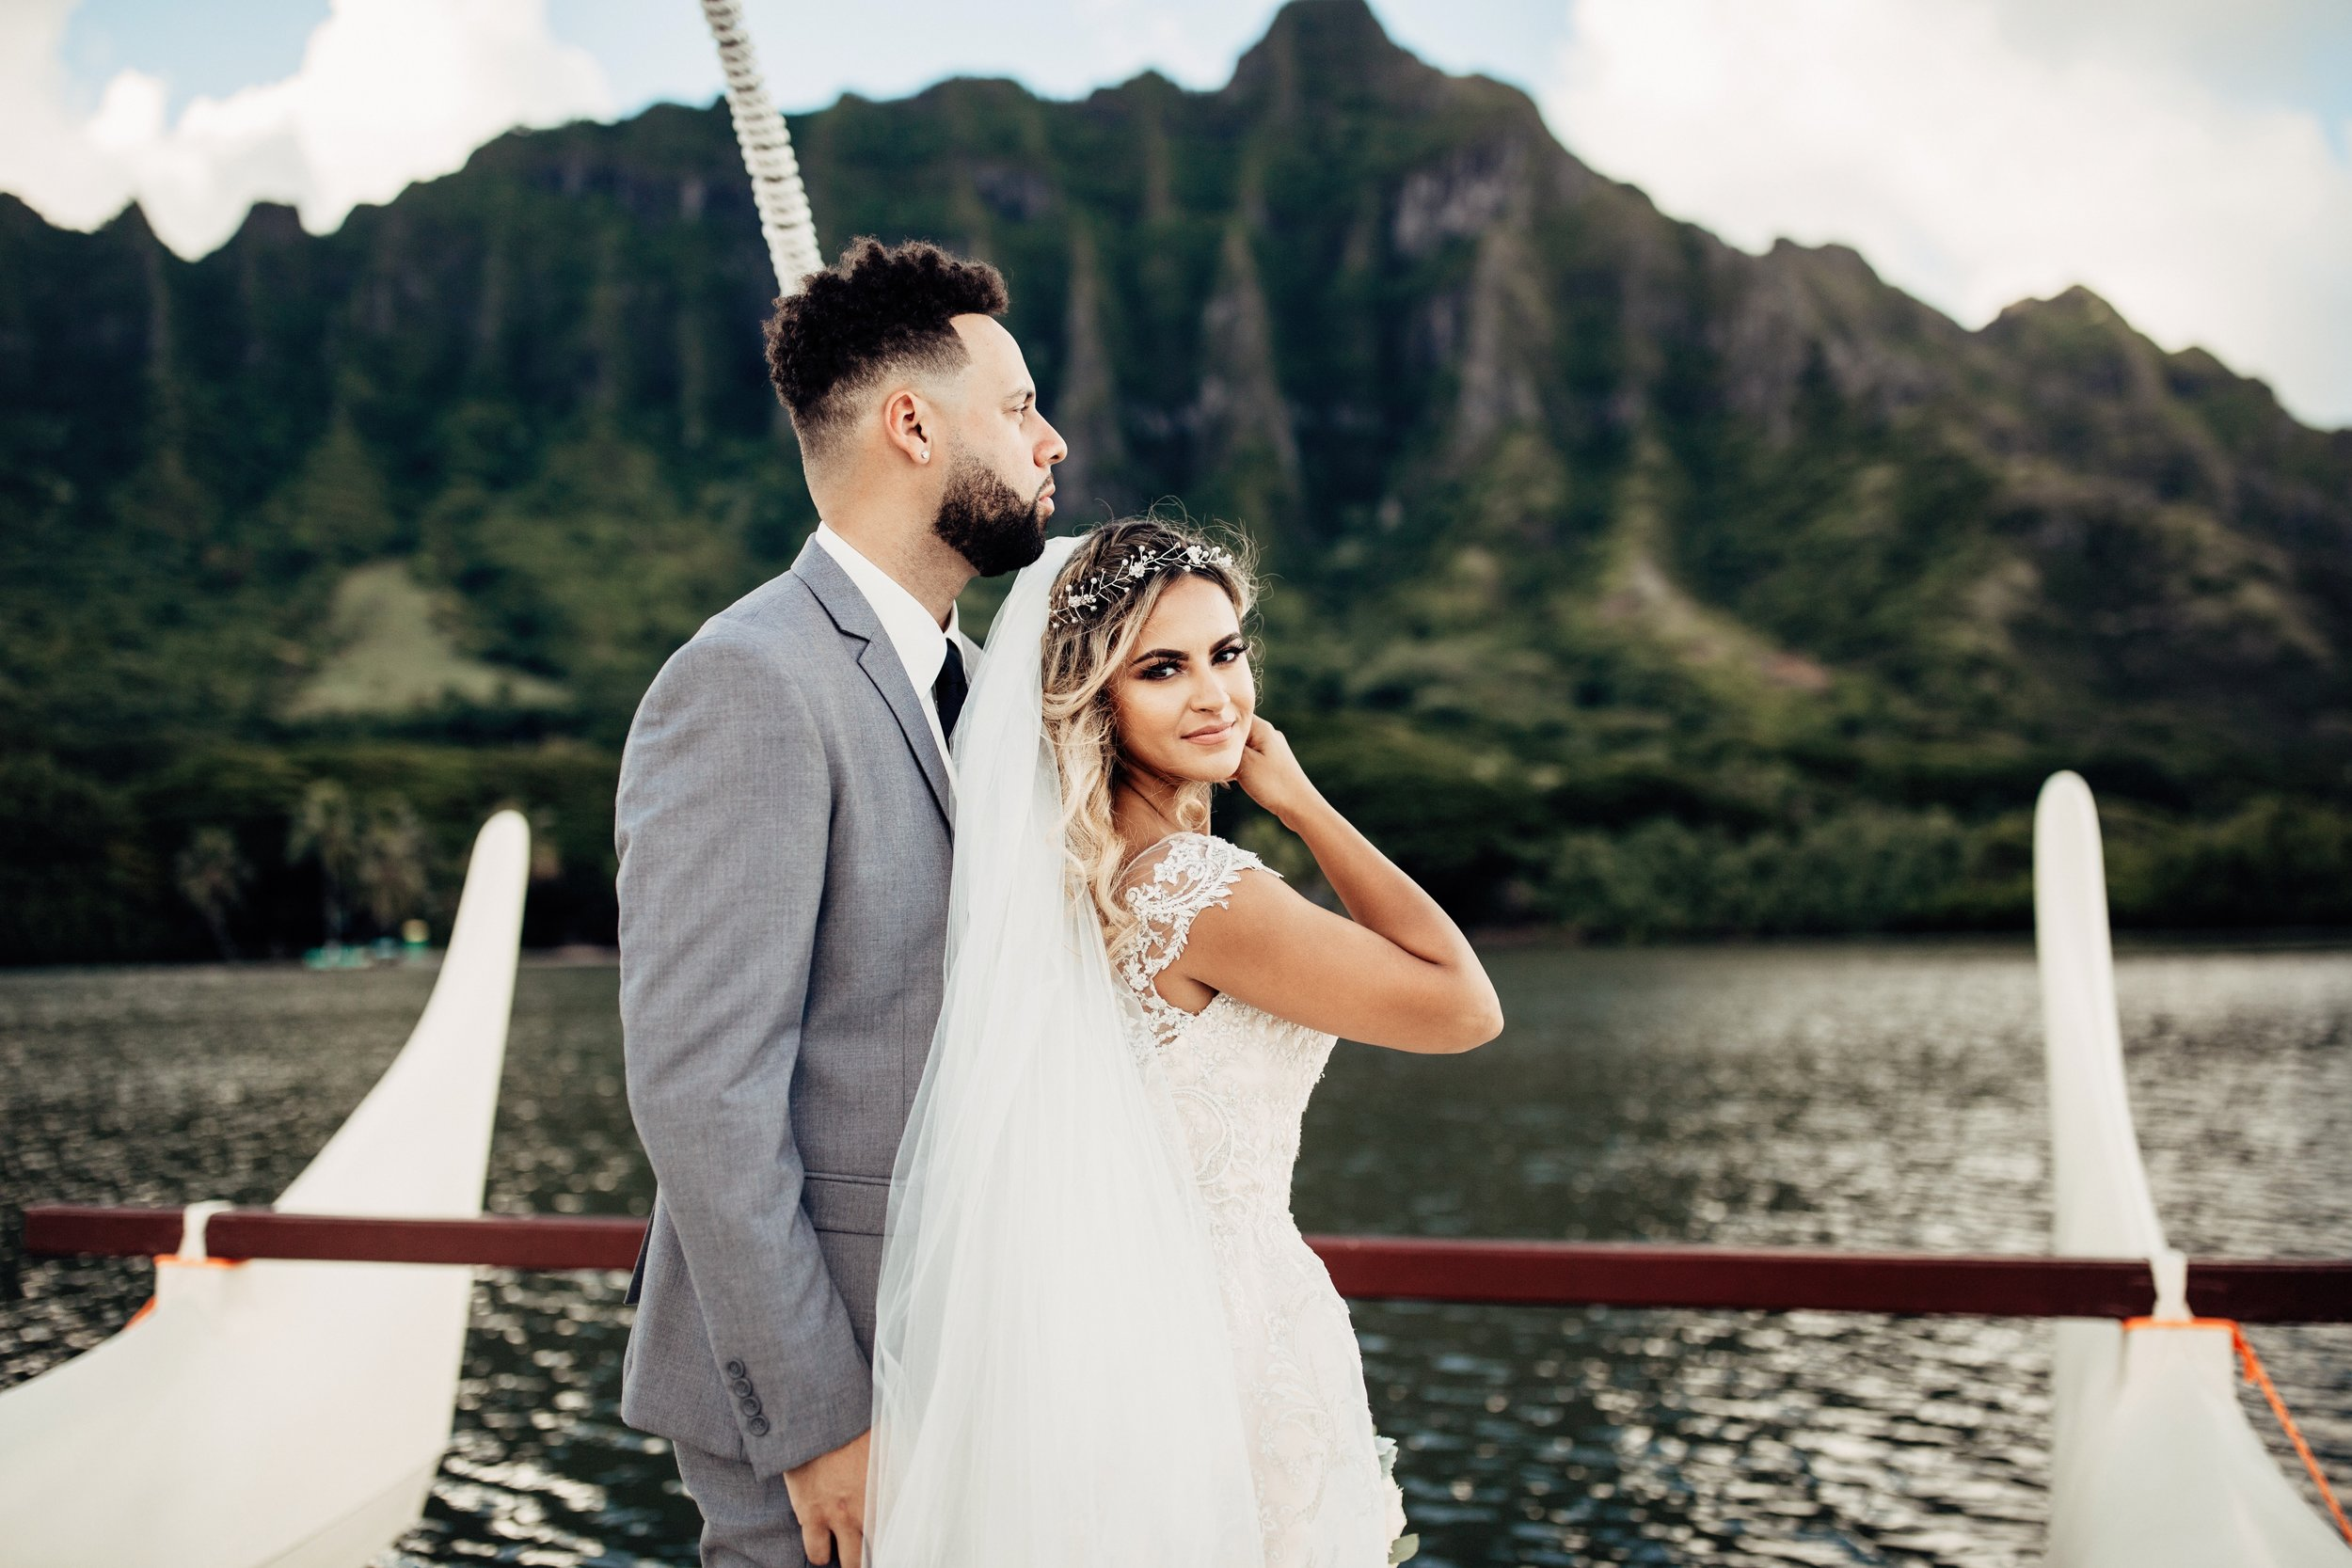 KUALOA-RANCH-WEDDING-1799FINAL.jpg